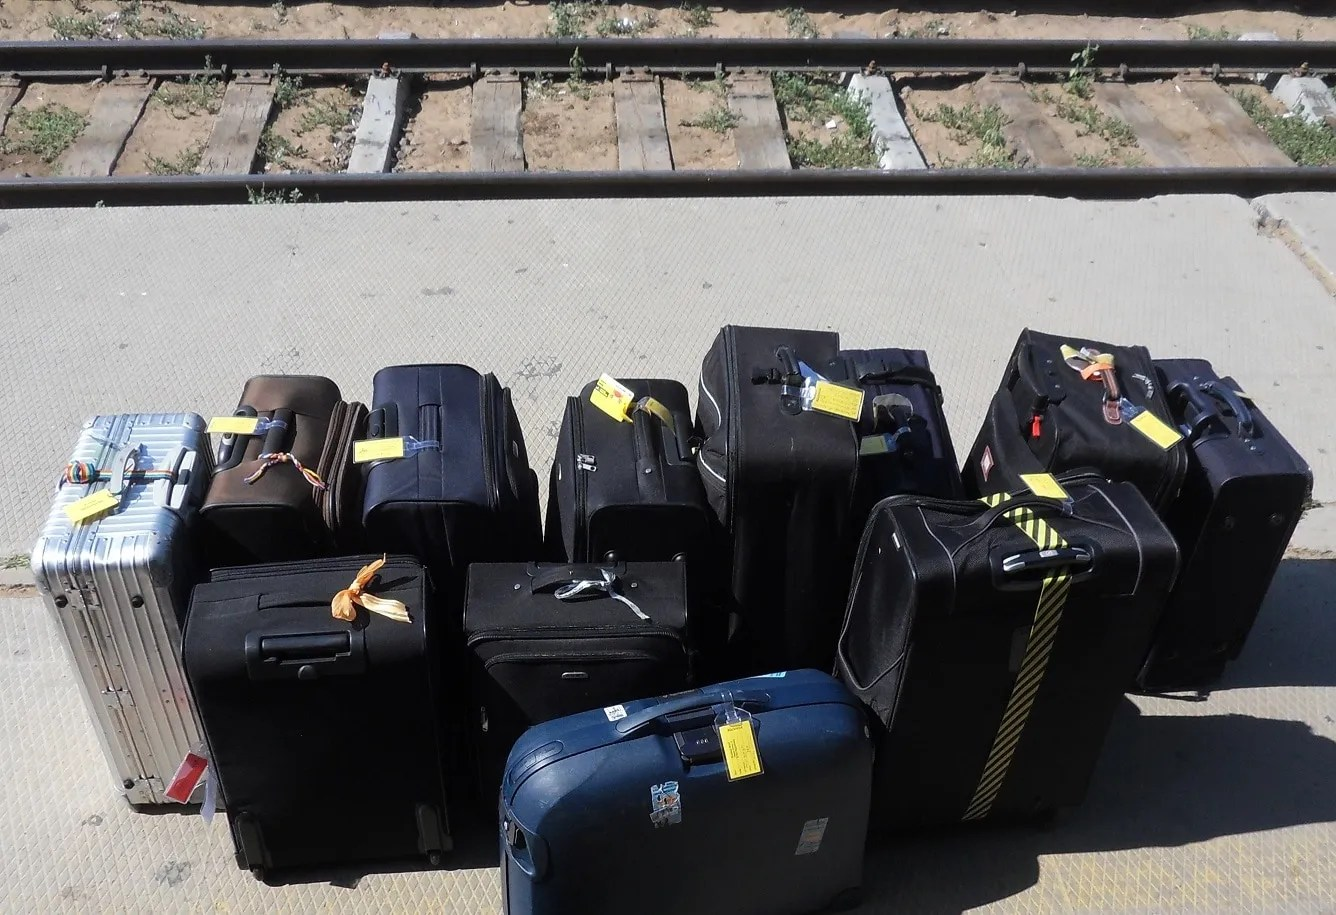 excessive luggage on trains platform